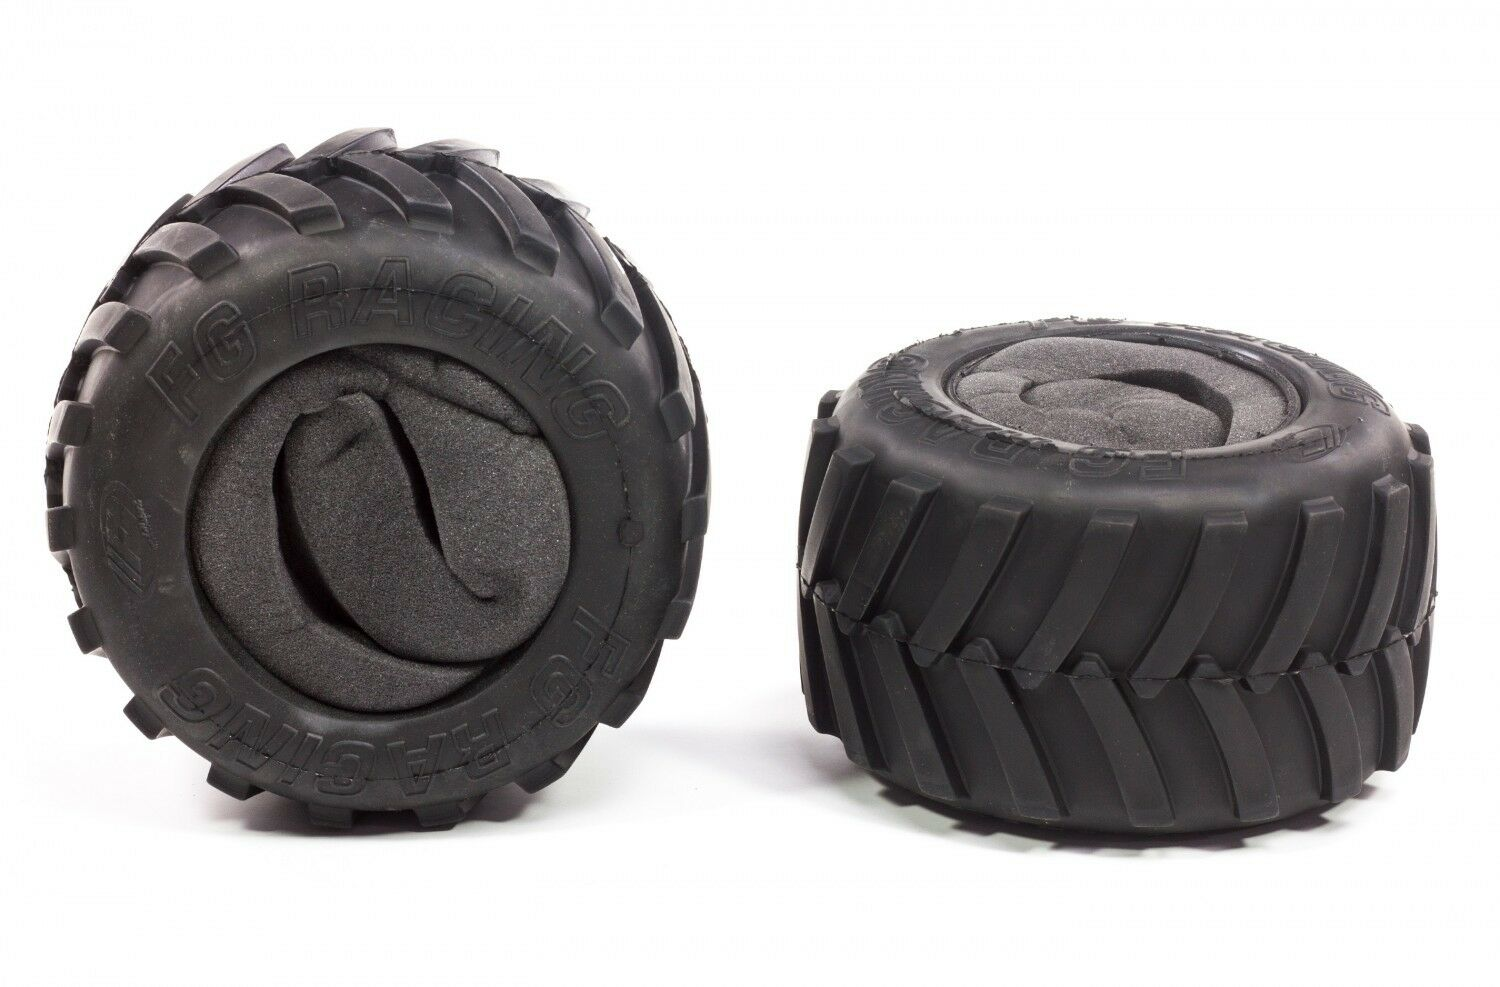 FG BIG-FOOT PNEUMATICI M con depositi - 2st. - 6228 01 - tires with inserts